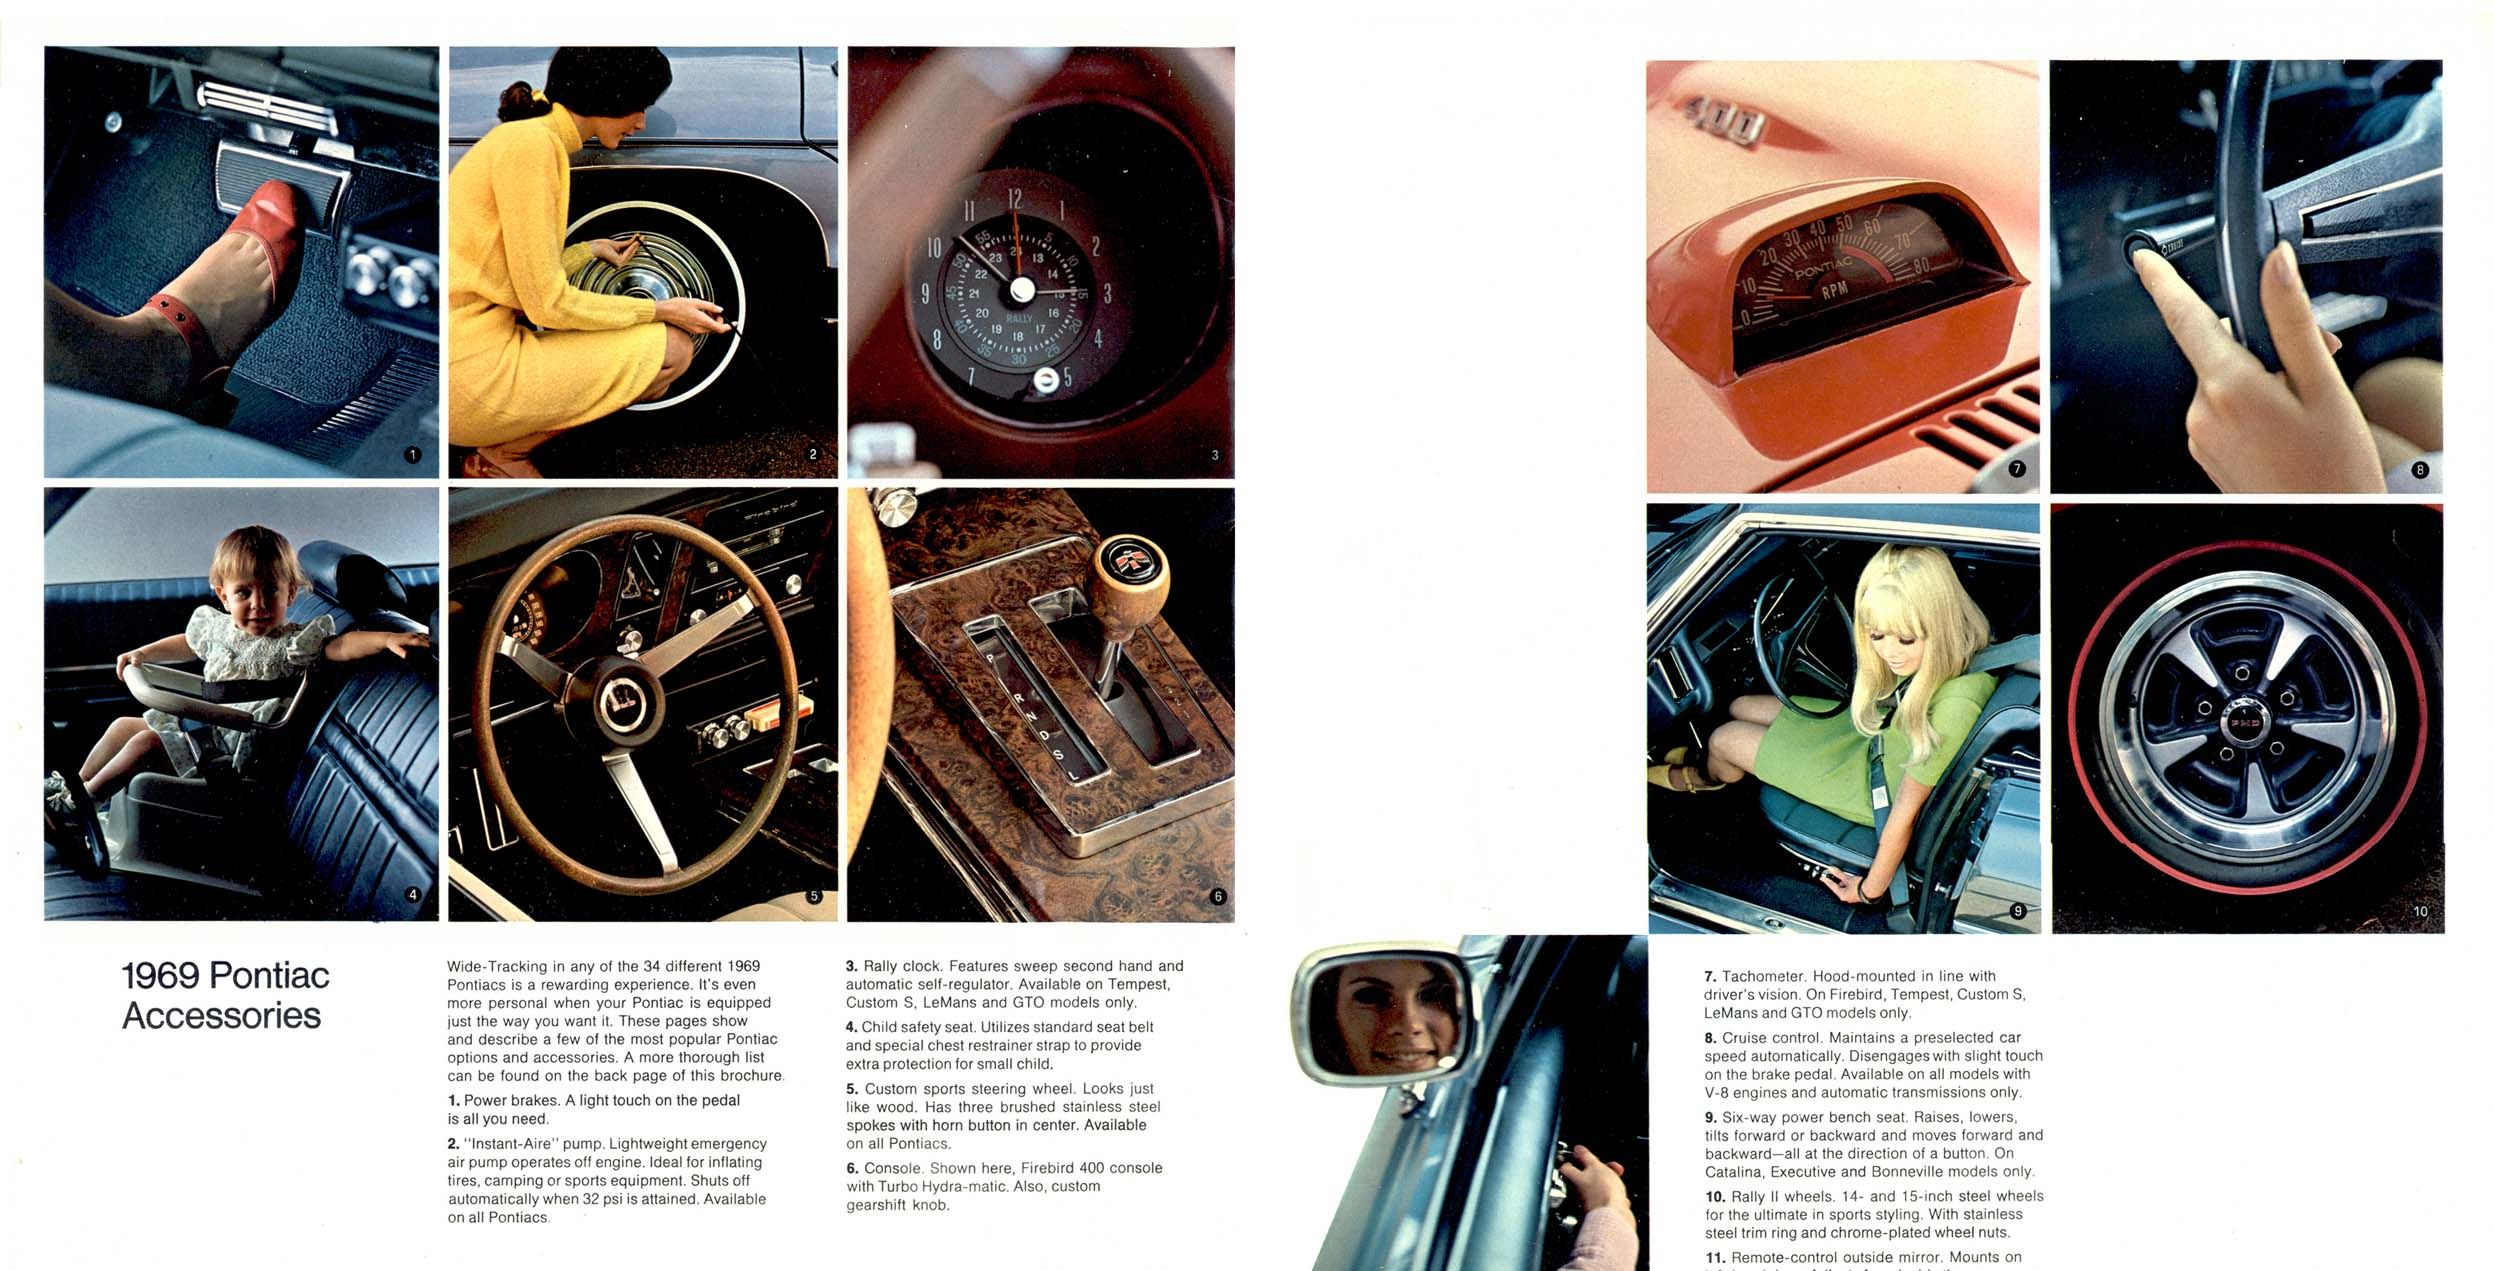 1969 Pontiac Accessories Note the child seat in the front seat